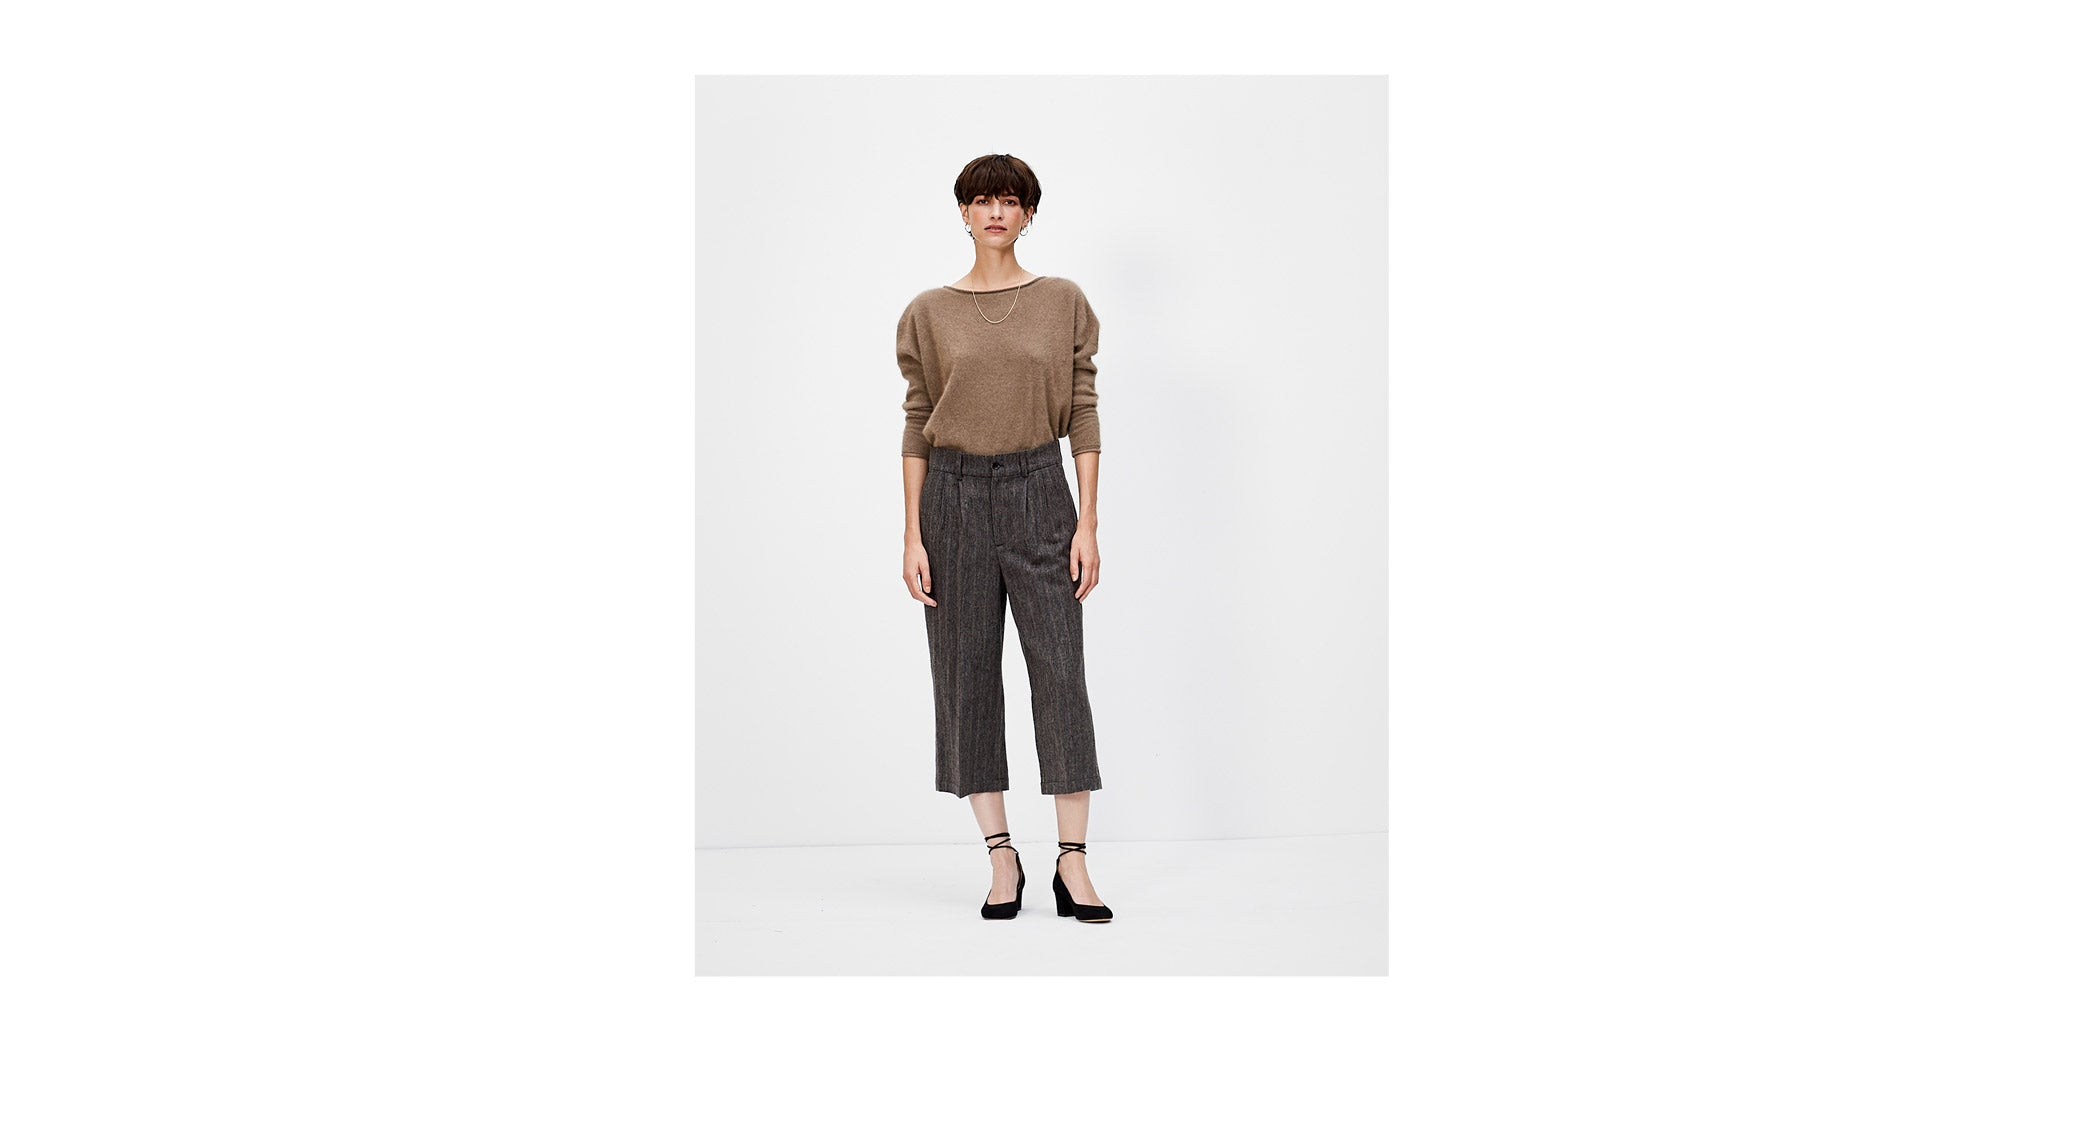 Bellerose FW'18 Saintonge pants and knitwear for women